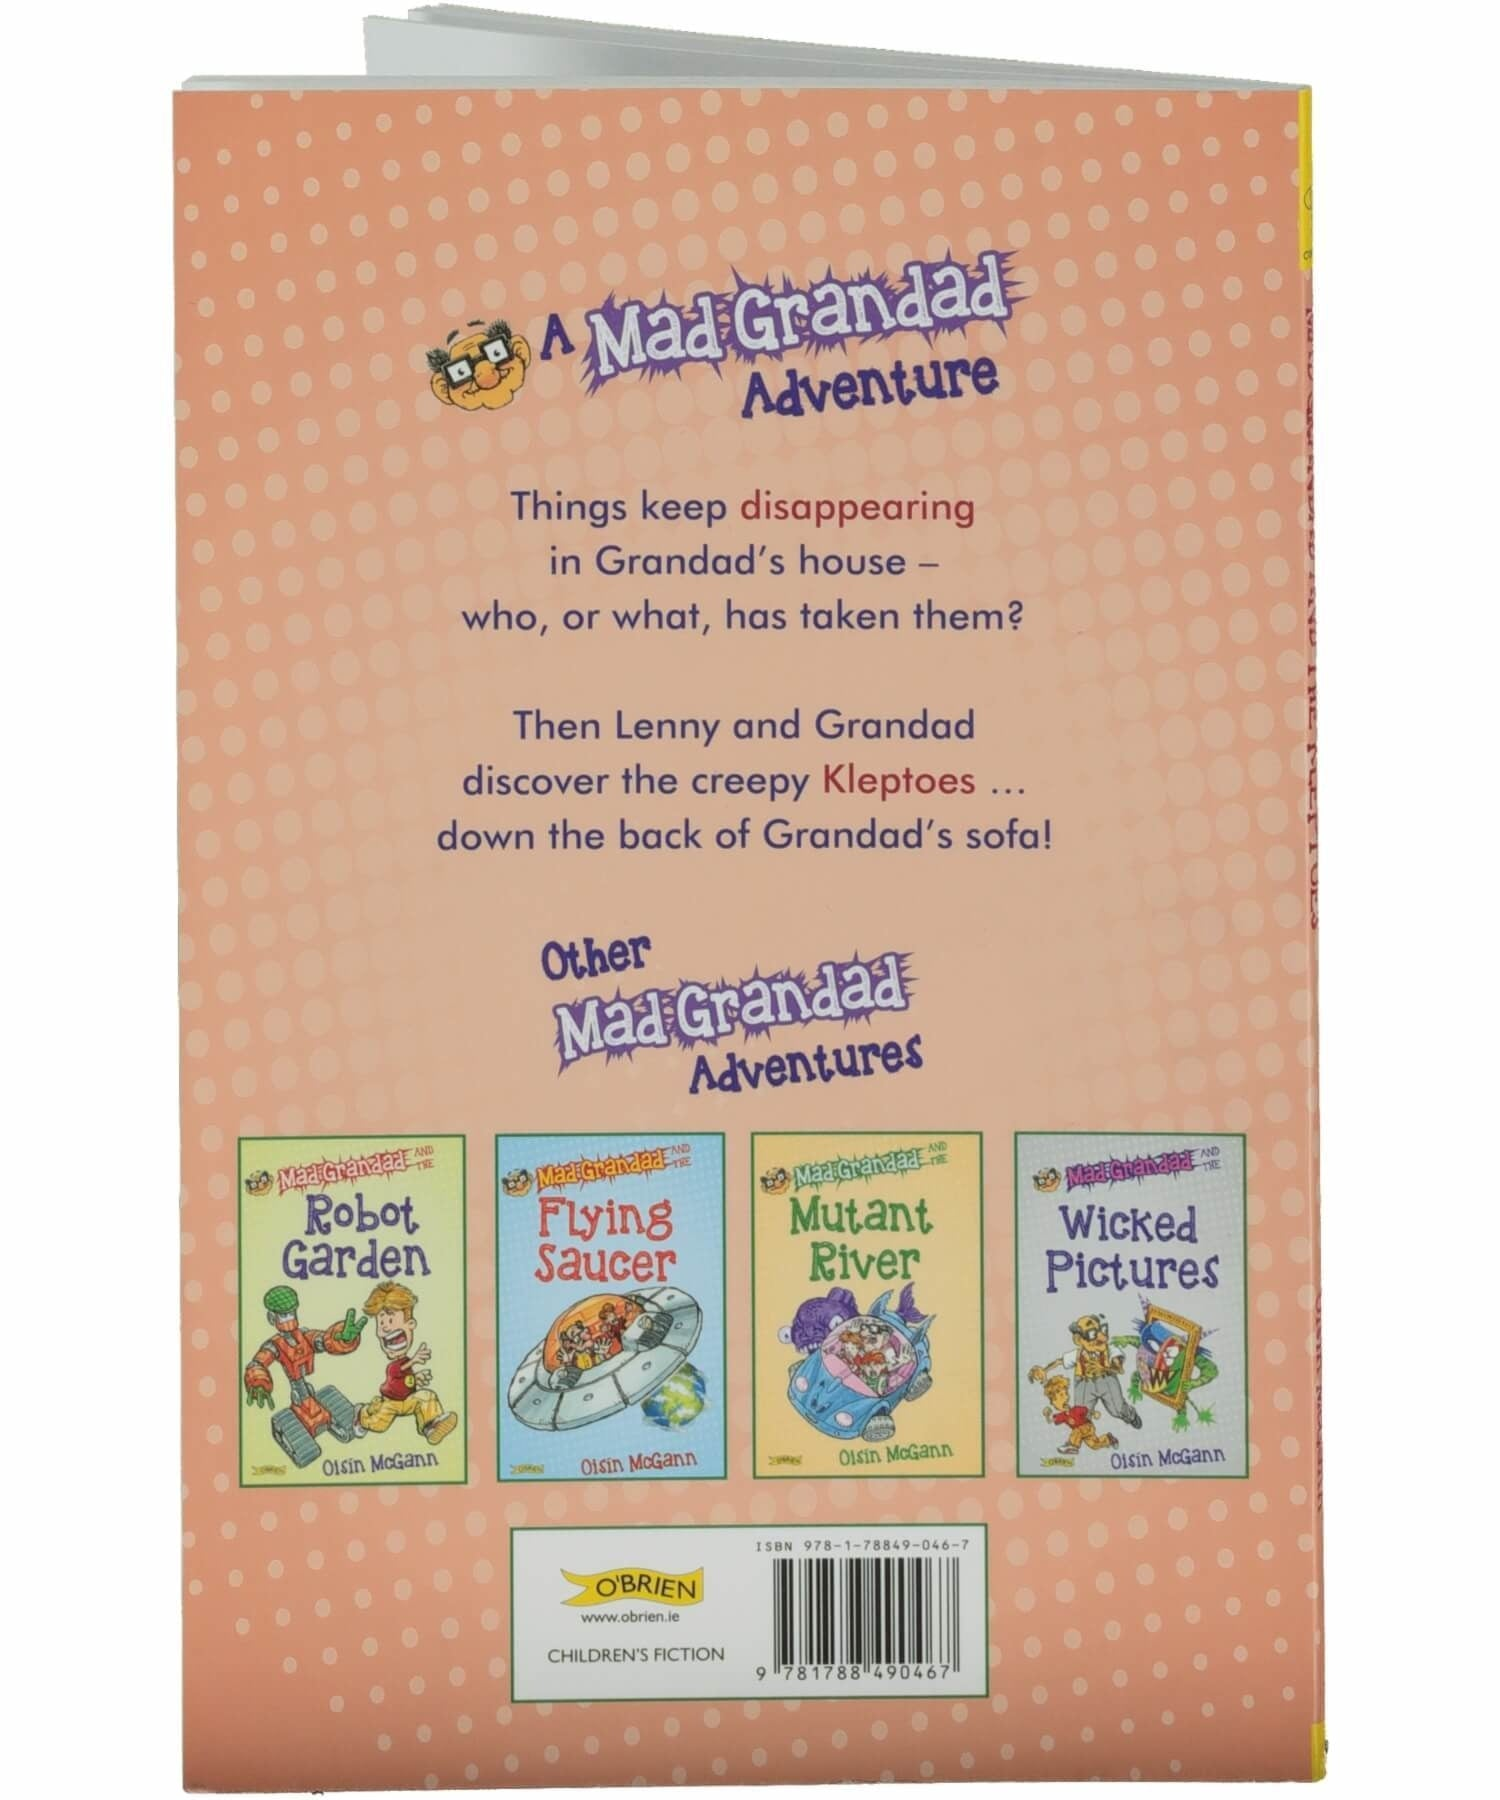 Mad Grandad and The Kleptoes - [The O'Brien Press] - Books & Stationery - Irish Gifts